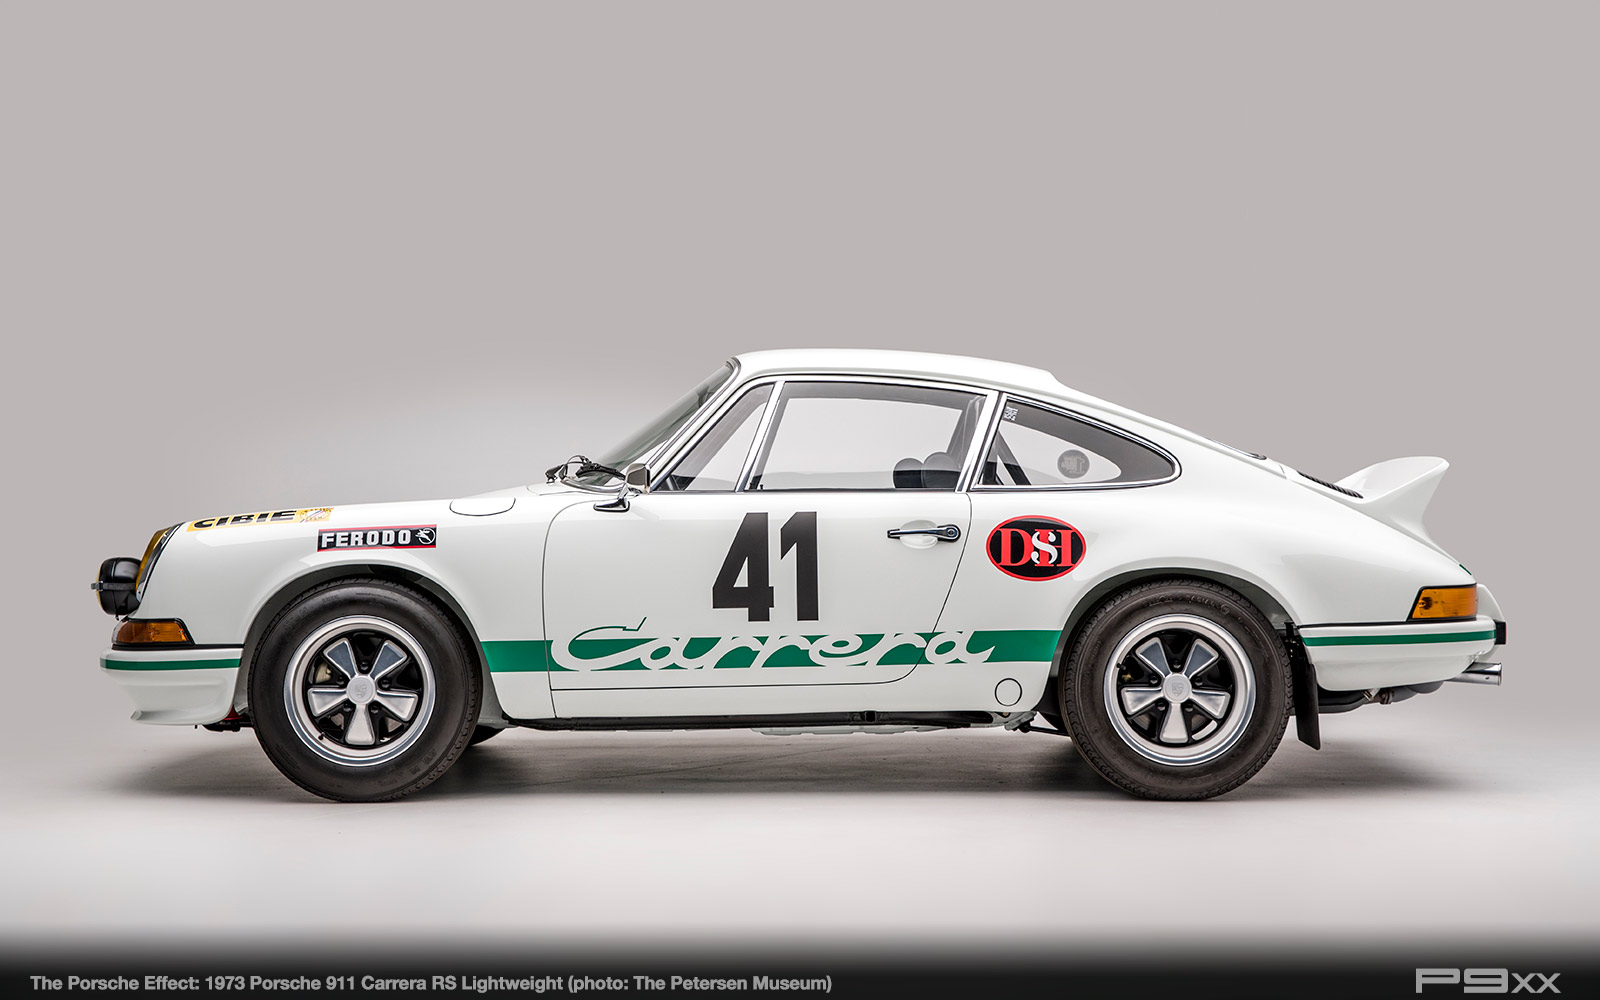 1973-911-Carrera-RS-Lightweight-Petersen-Automotive-Museum-The-Porsche-Effect-376